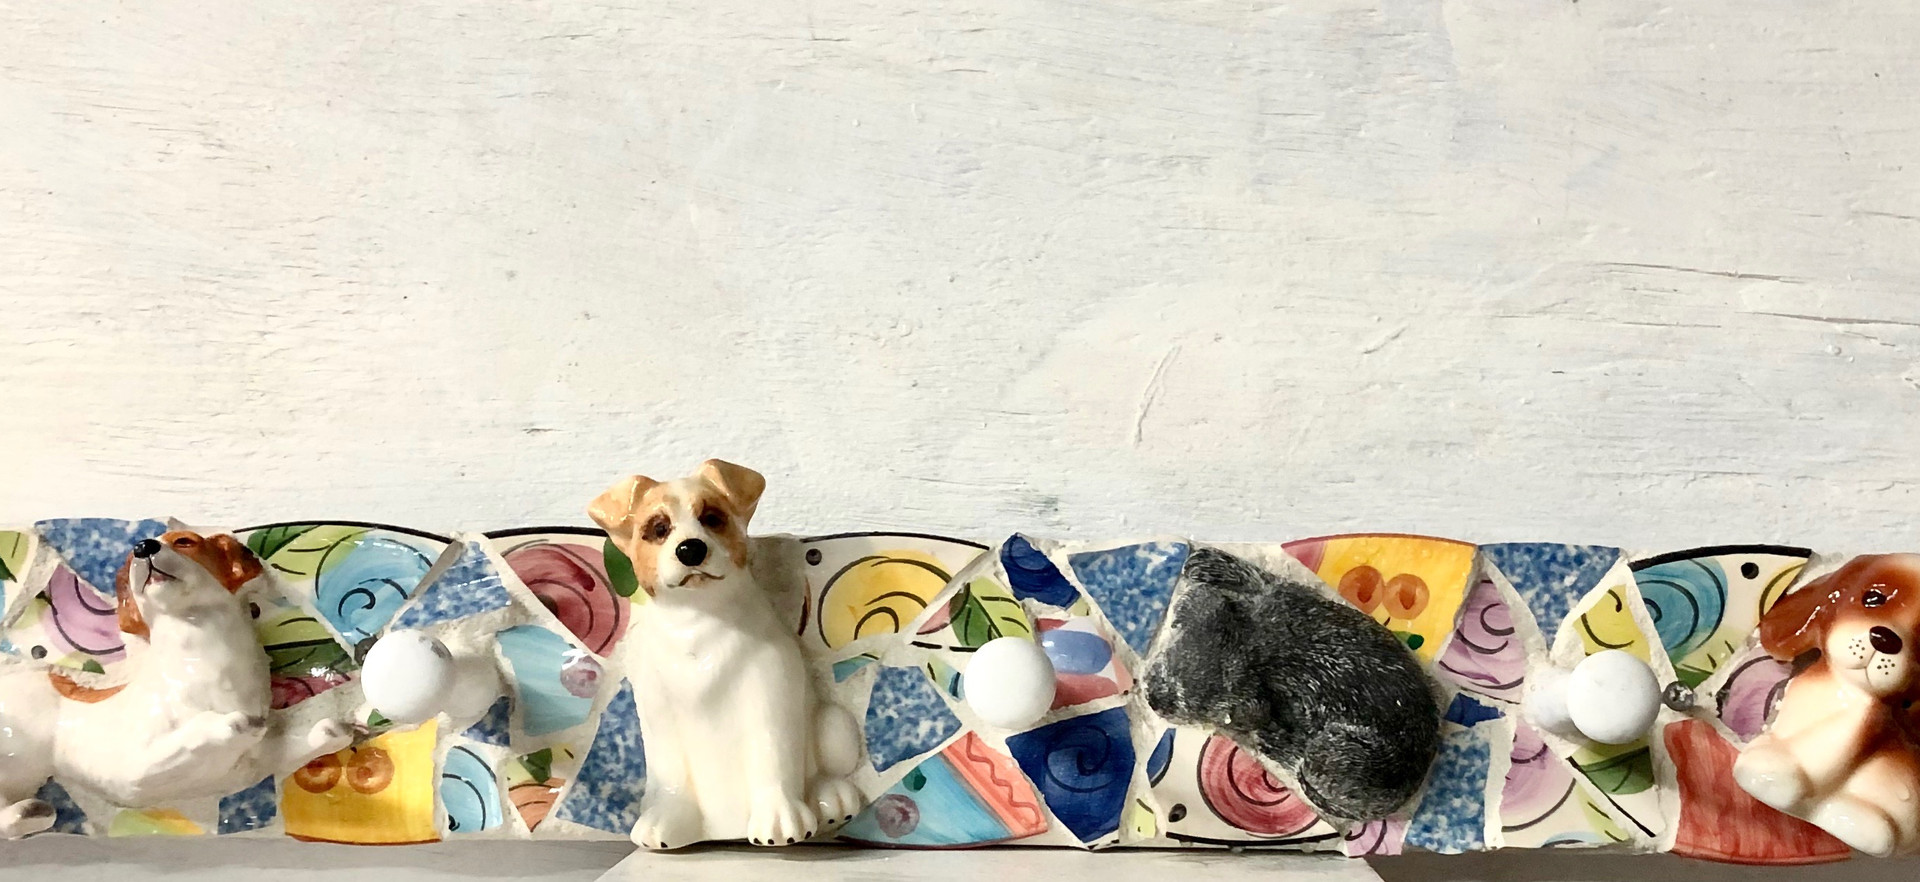 Pups Hangin' Out